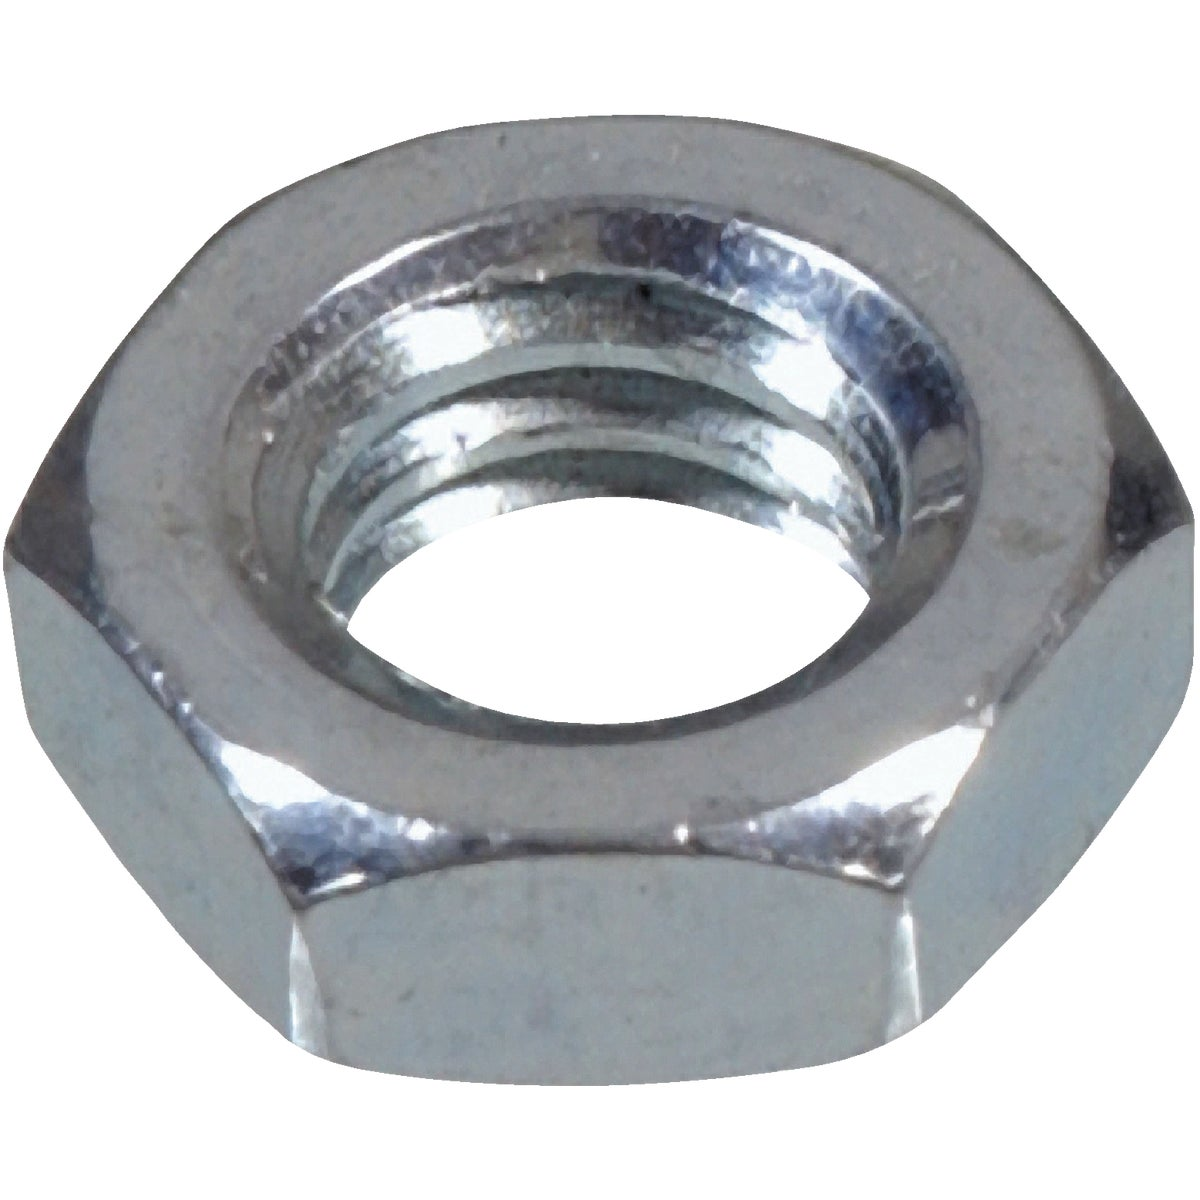 10-24 SS MACH SCREW NUT - 829232 by Hillman Fastener